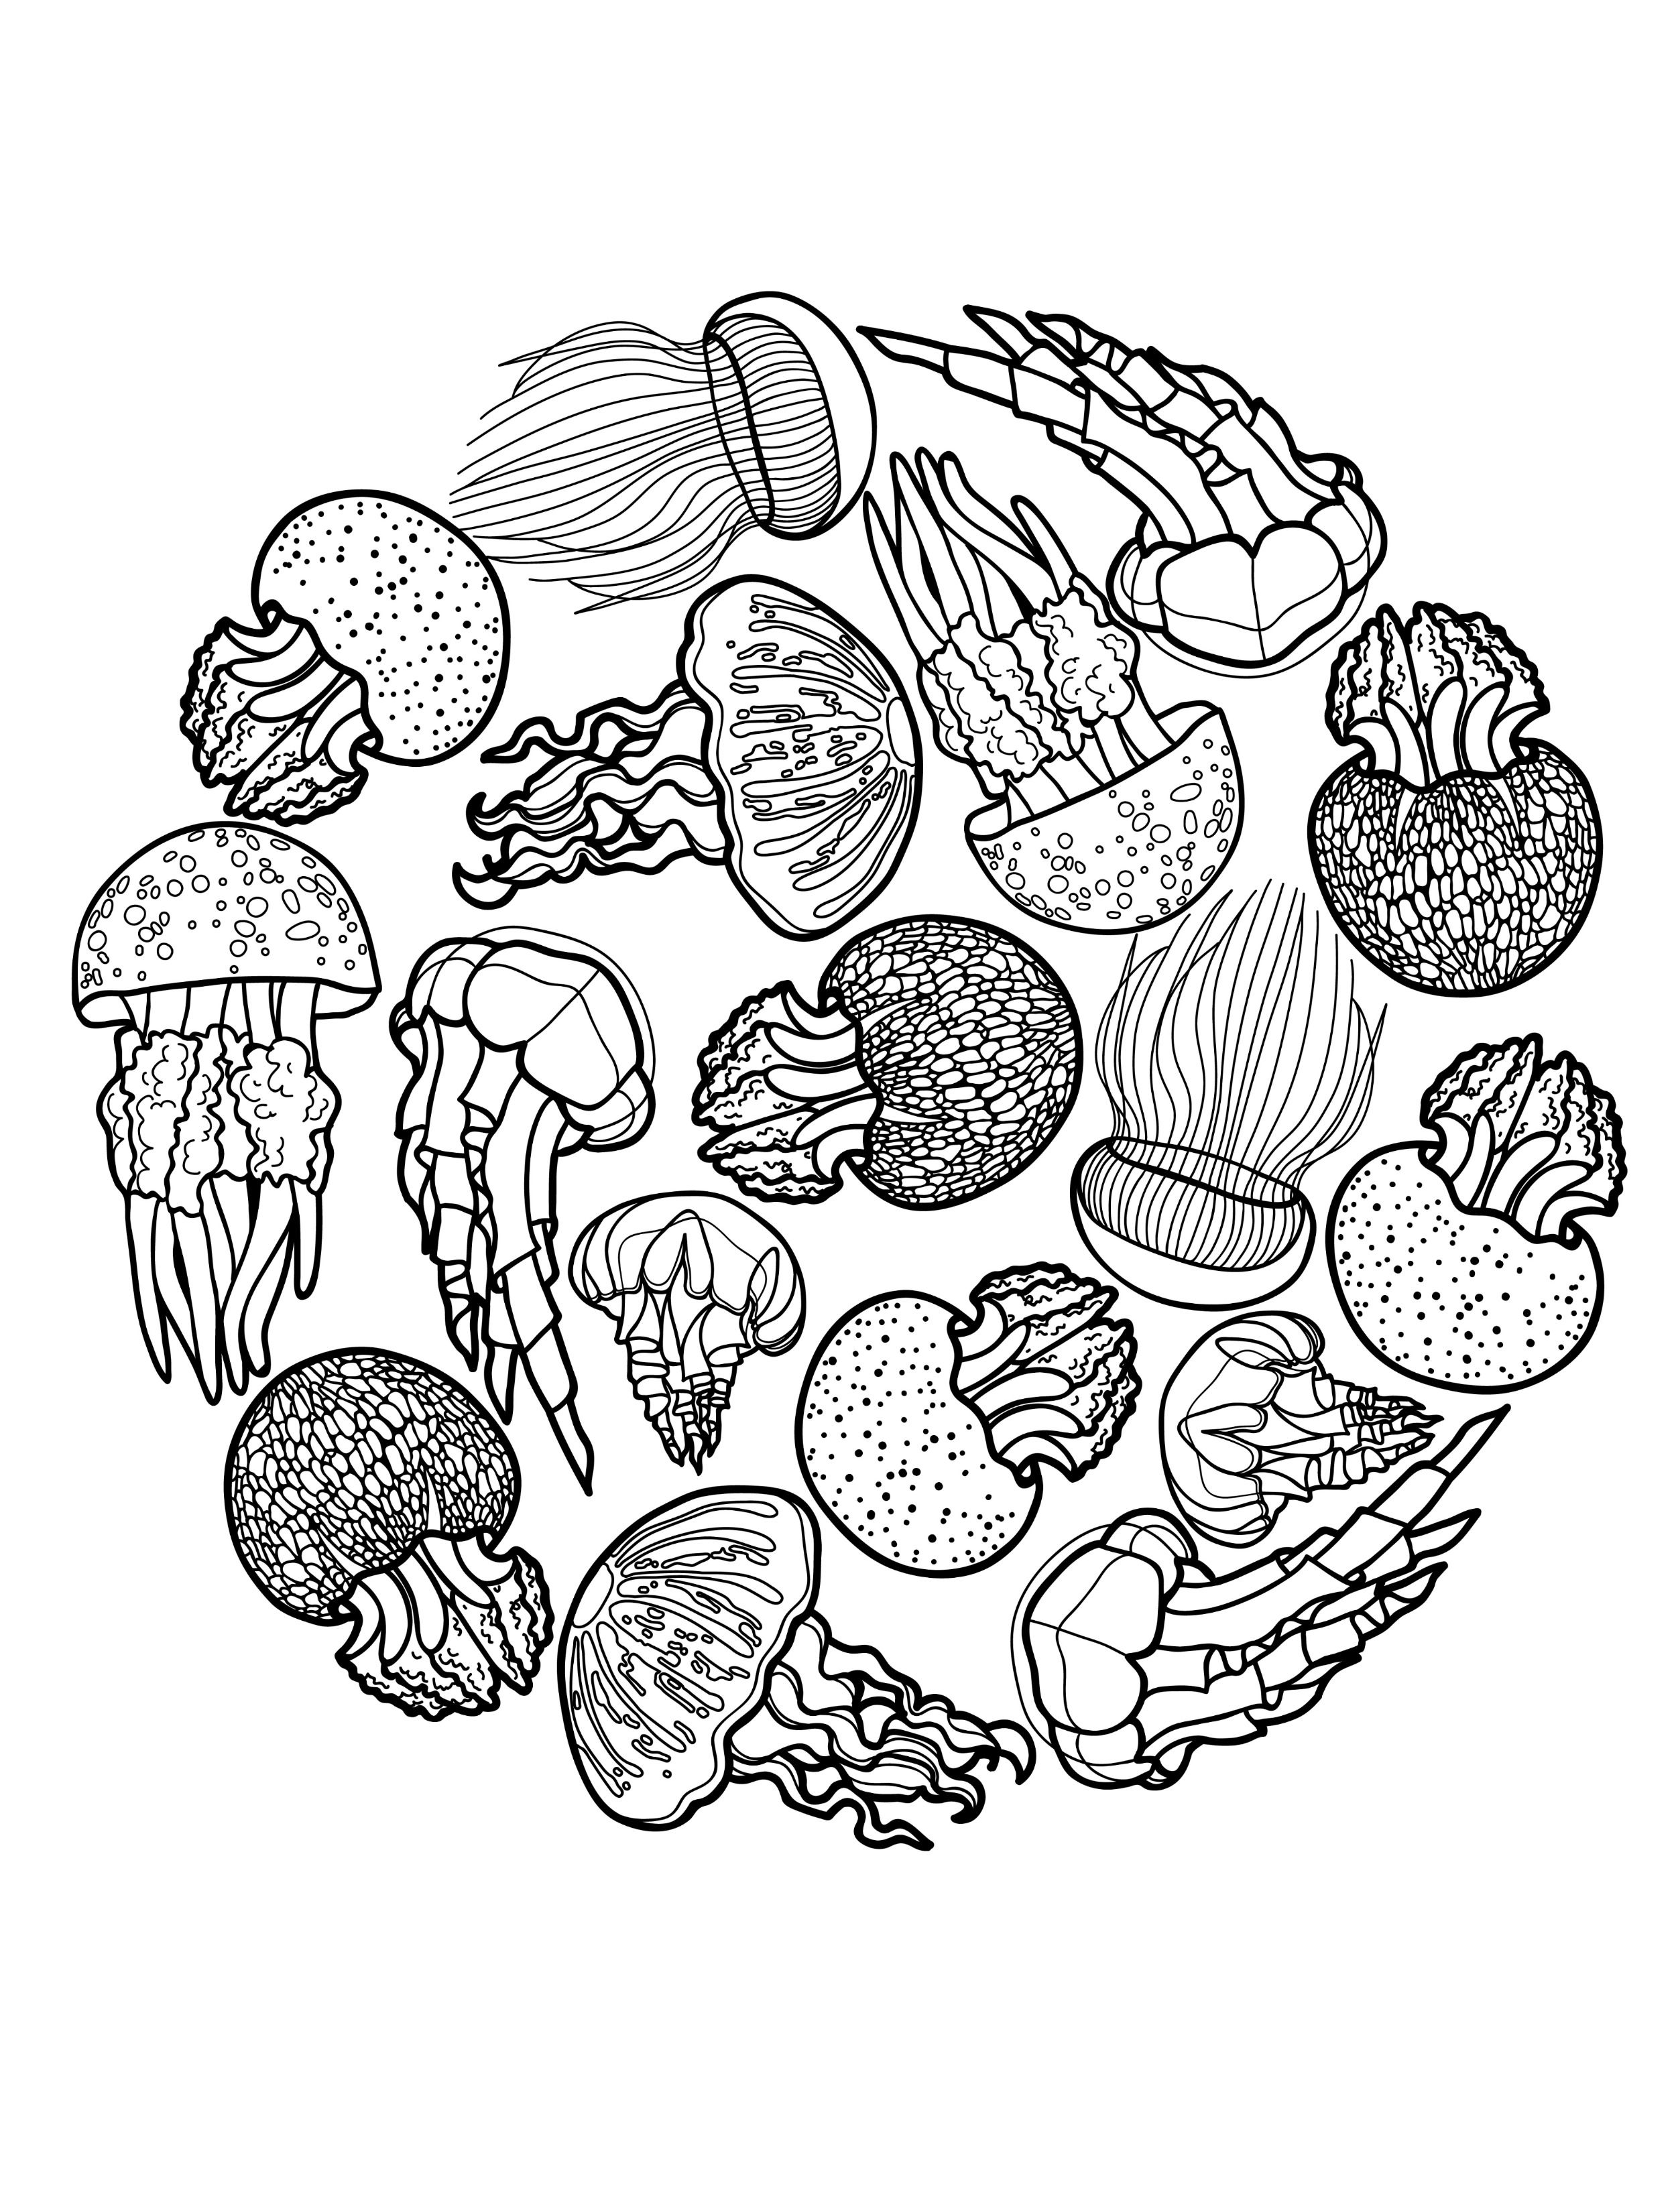 Jellyfish Coloring Page Freedownloadableadultcoloringpagewithjellyfish